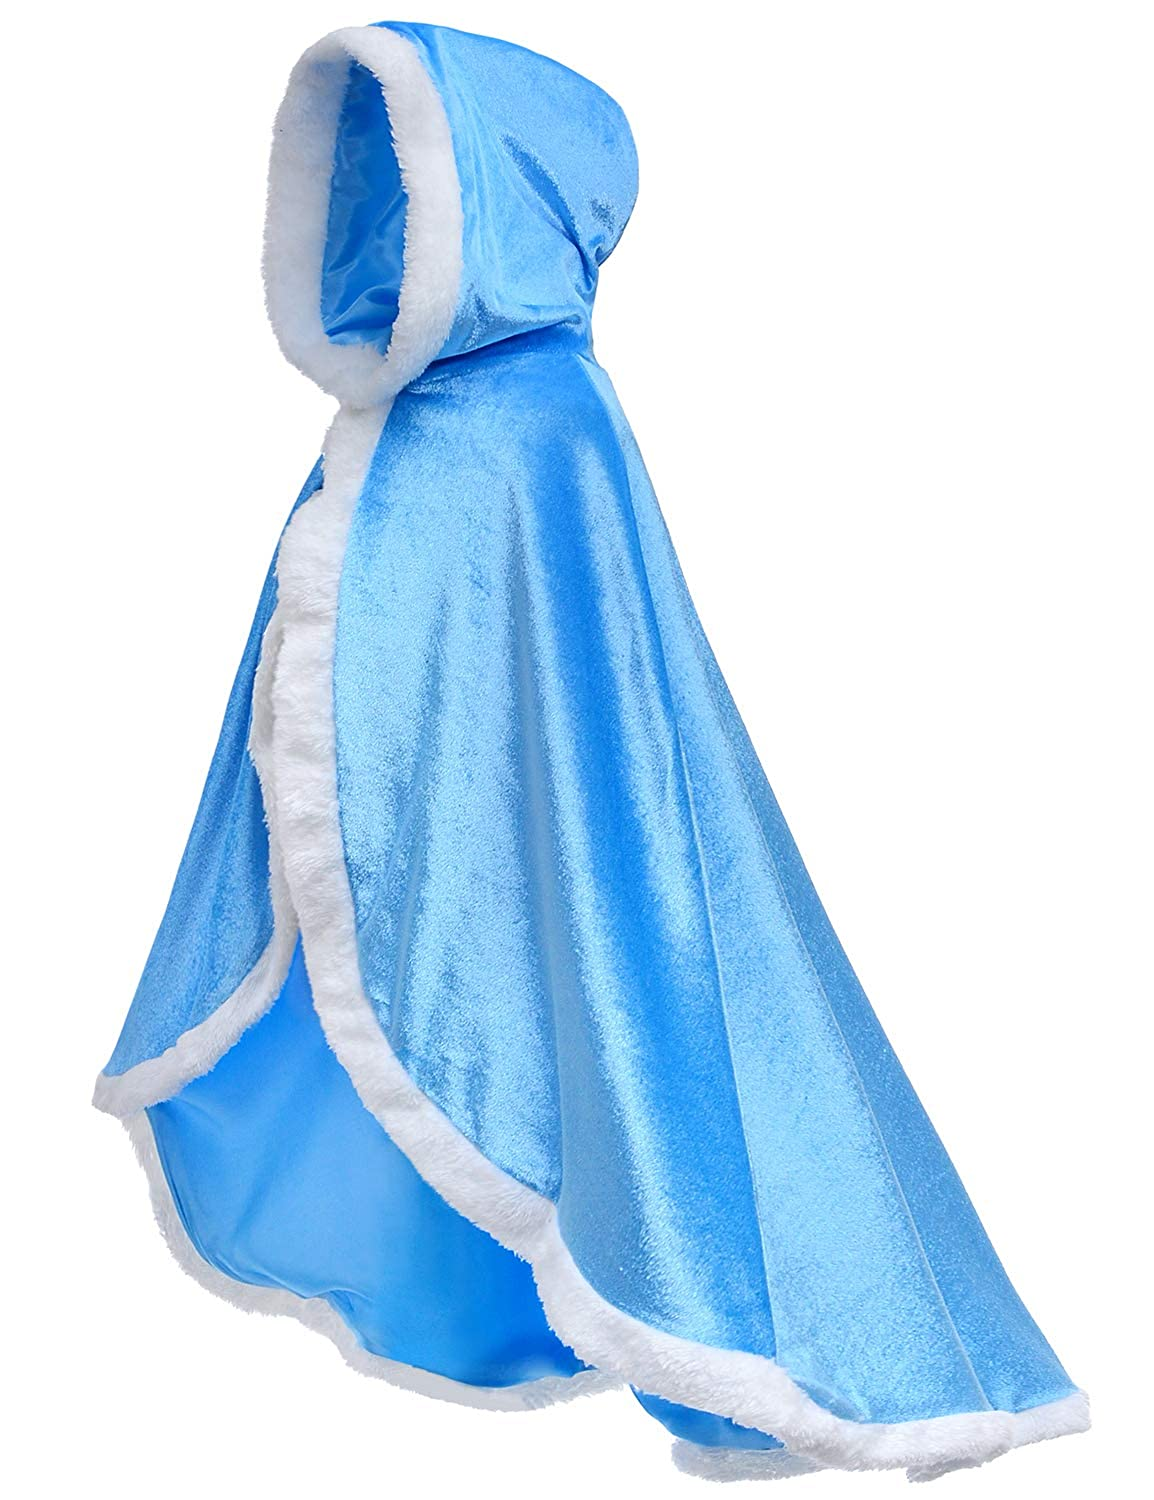 Fur Princess Hooded Cape Cloaks Costume for Girls Dress Up 3-12 Years